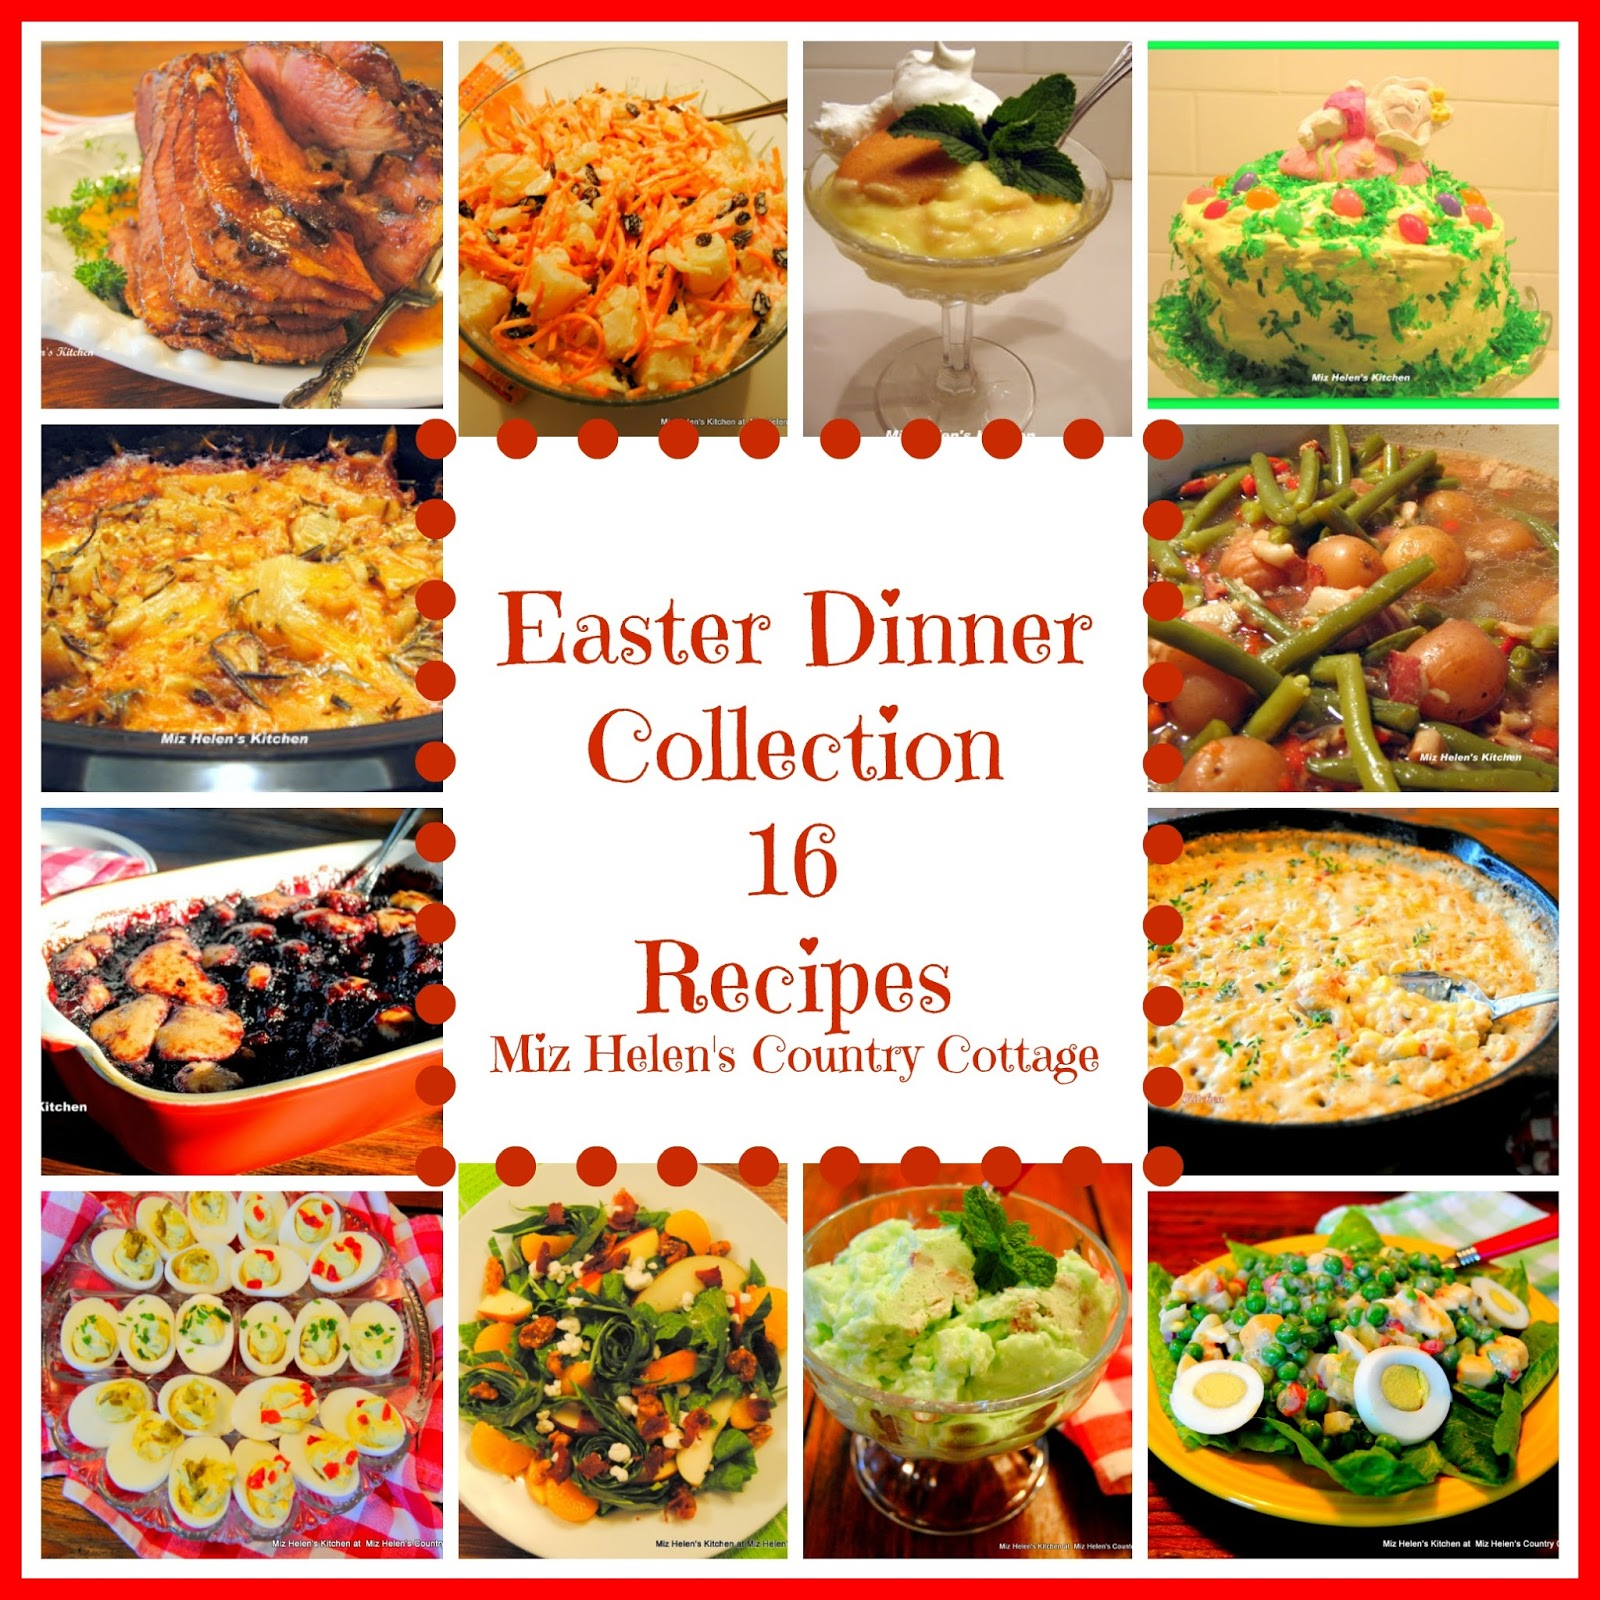 Miz helens country cottage easter dinner recipe collection easter dinner recipe collection forumfinder Gallery